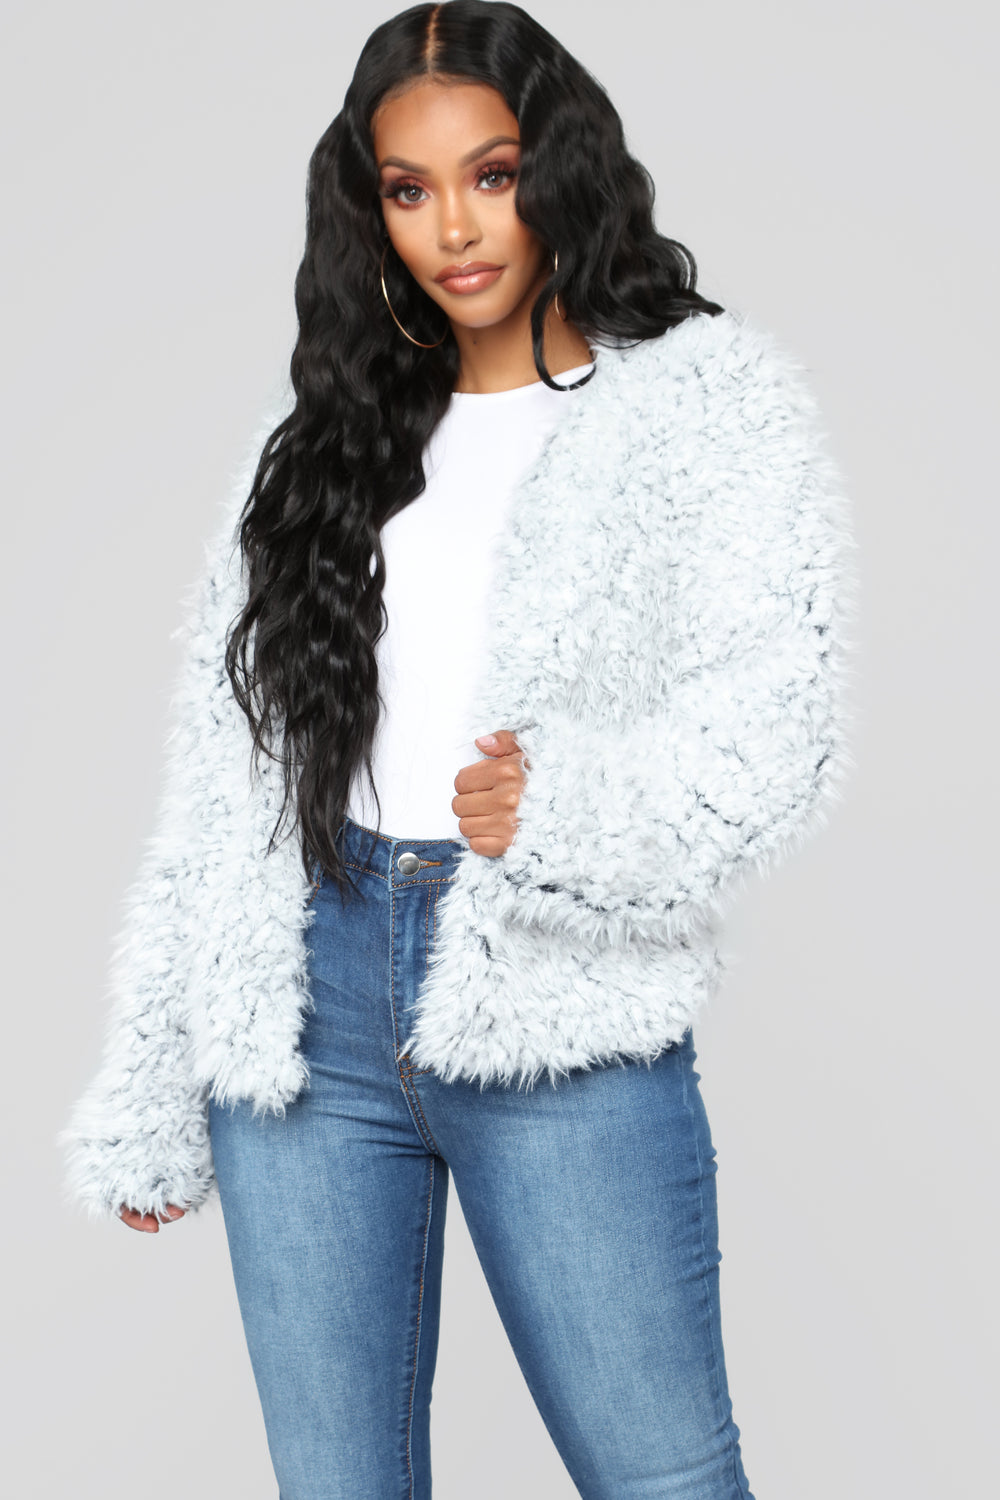 Keep Me Cozy Fur Jacket - Grey